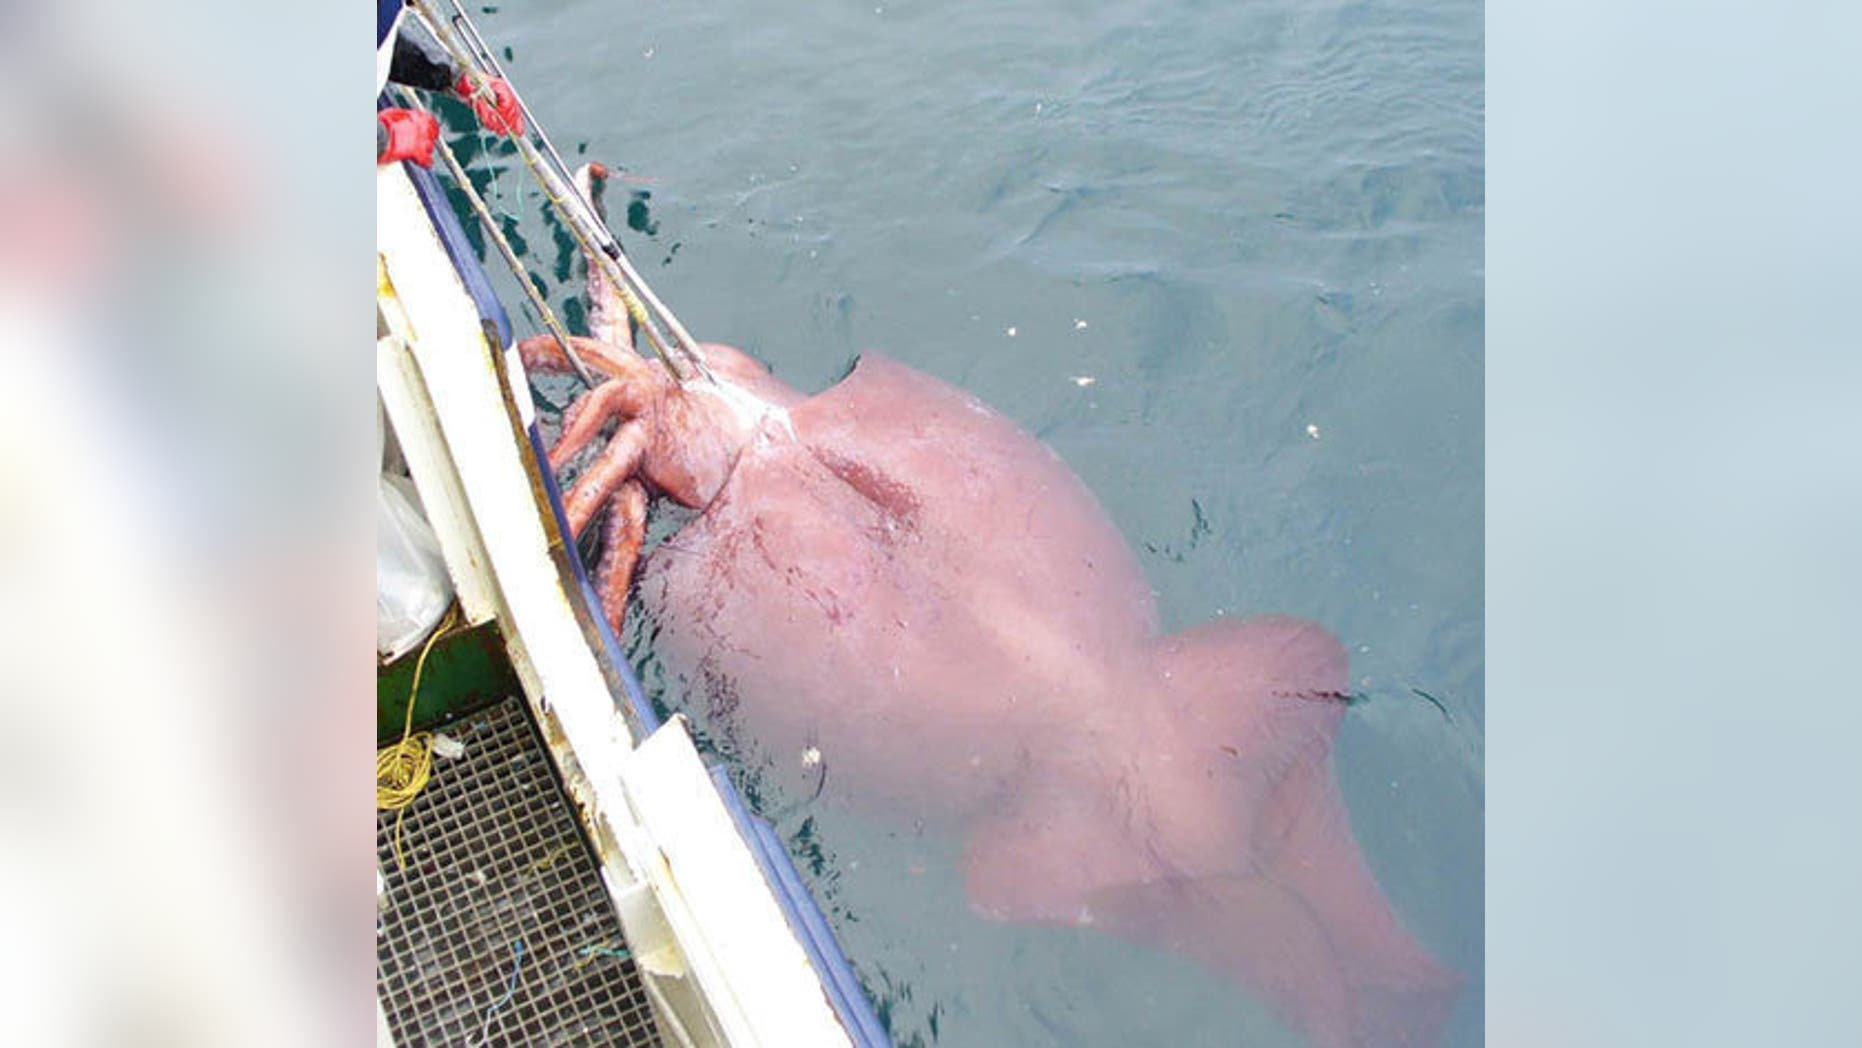 True to its name, the colossal squid is a pretty big squid. It is thought to be the largest invertebrate, measuring 39–46 feet long. It also has the largest eyes of any animal.